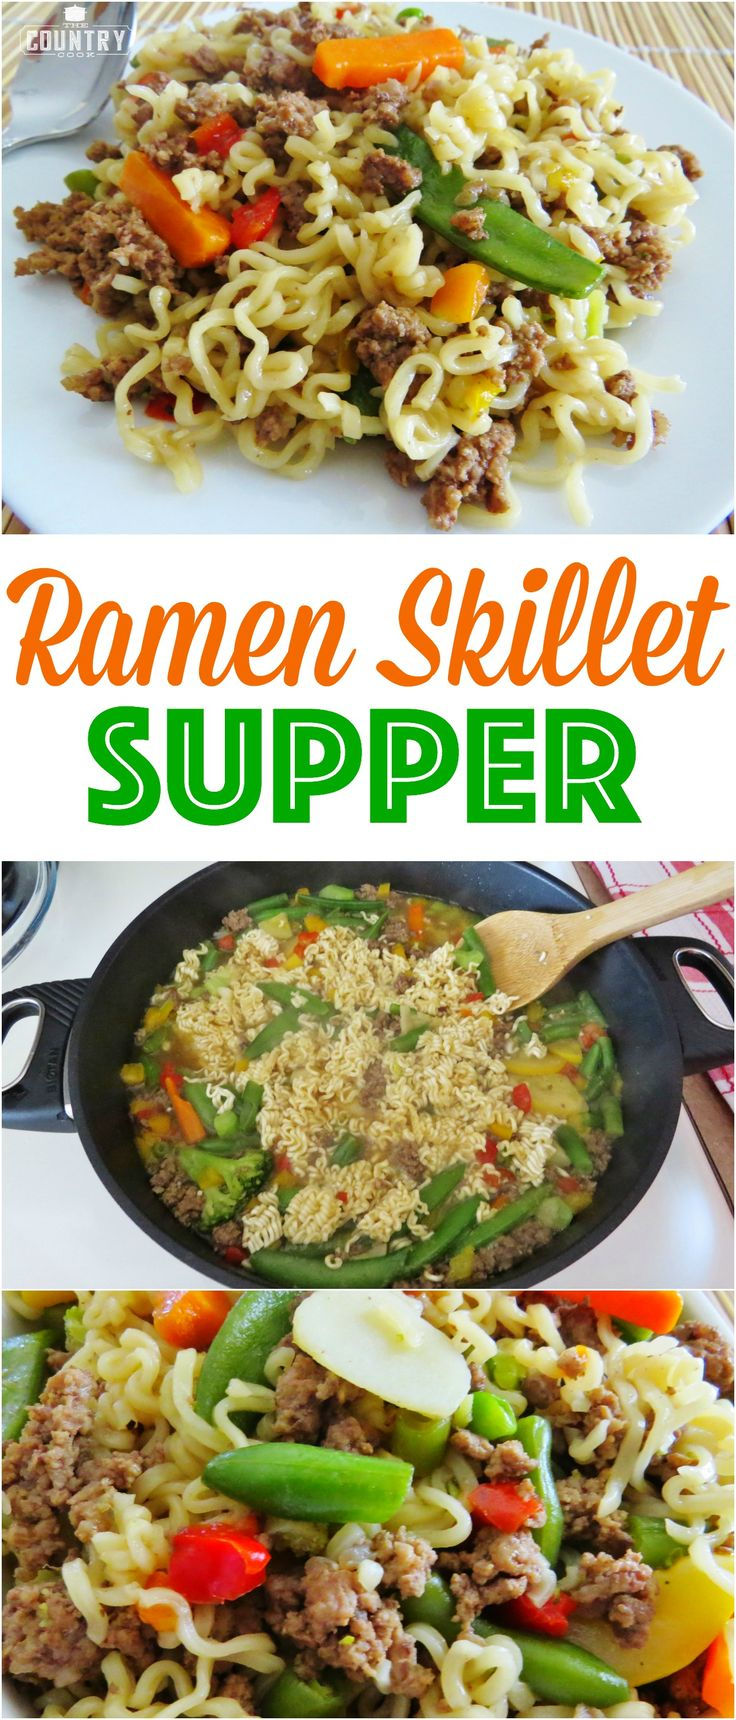 Ramen Skillet Supper recipe from The Country Cook. Less than 30 minutes to make and only 5 ingredients!